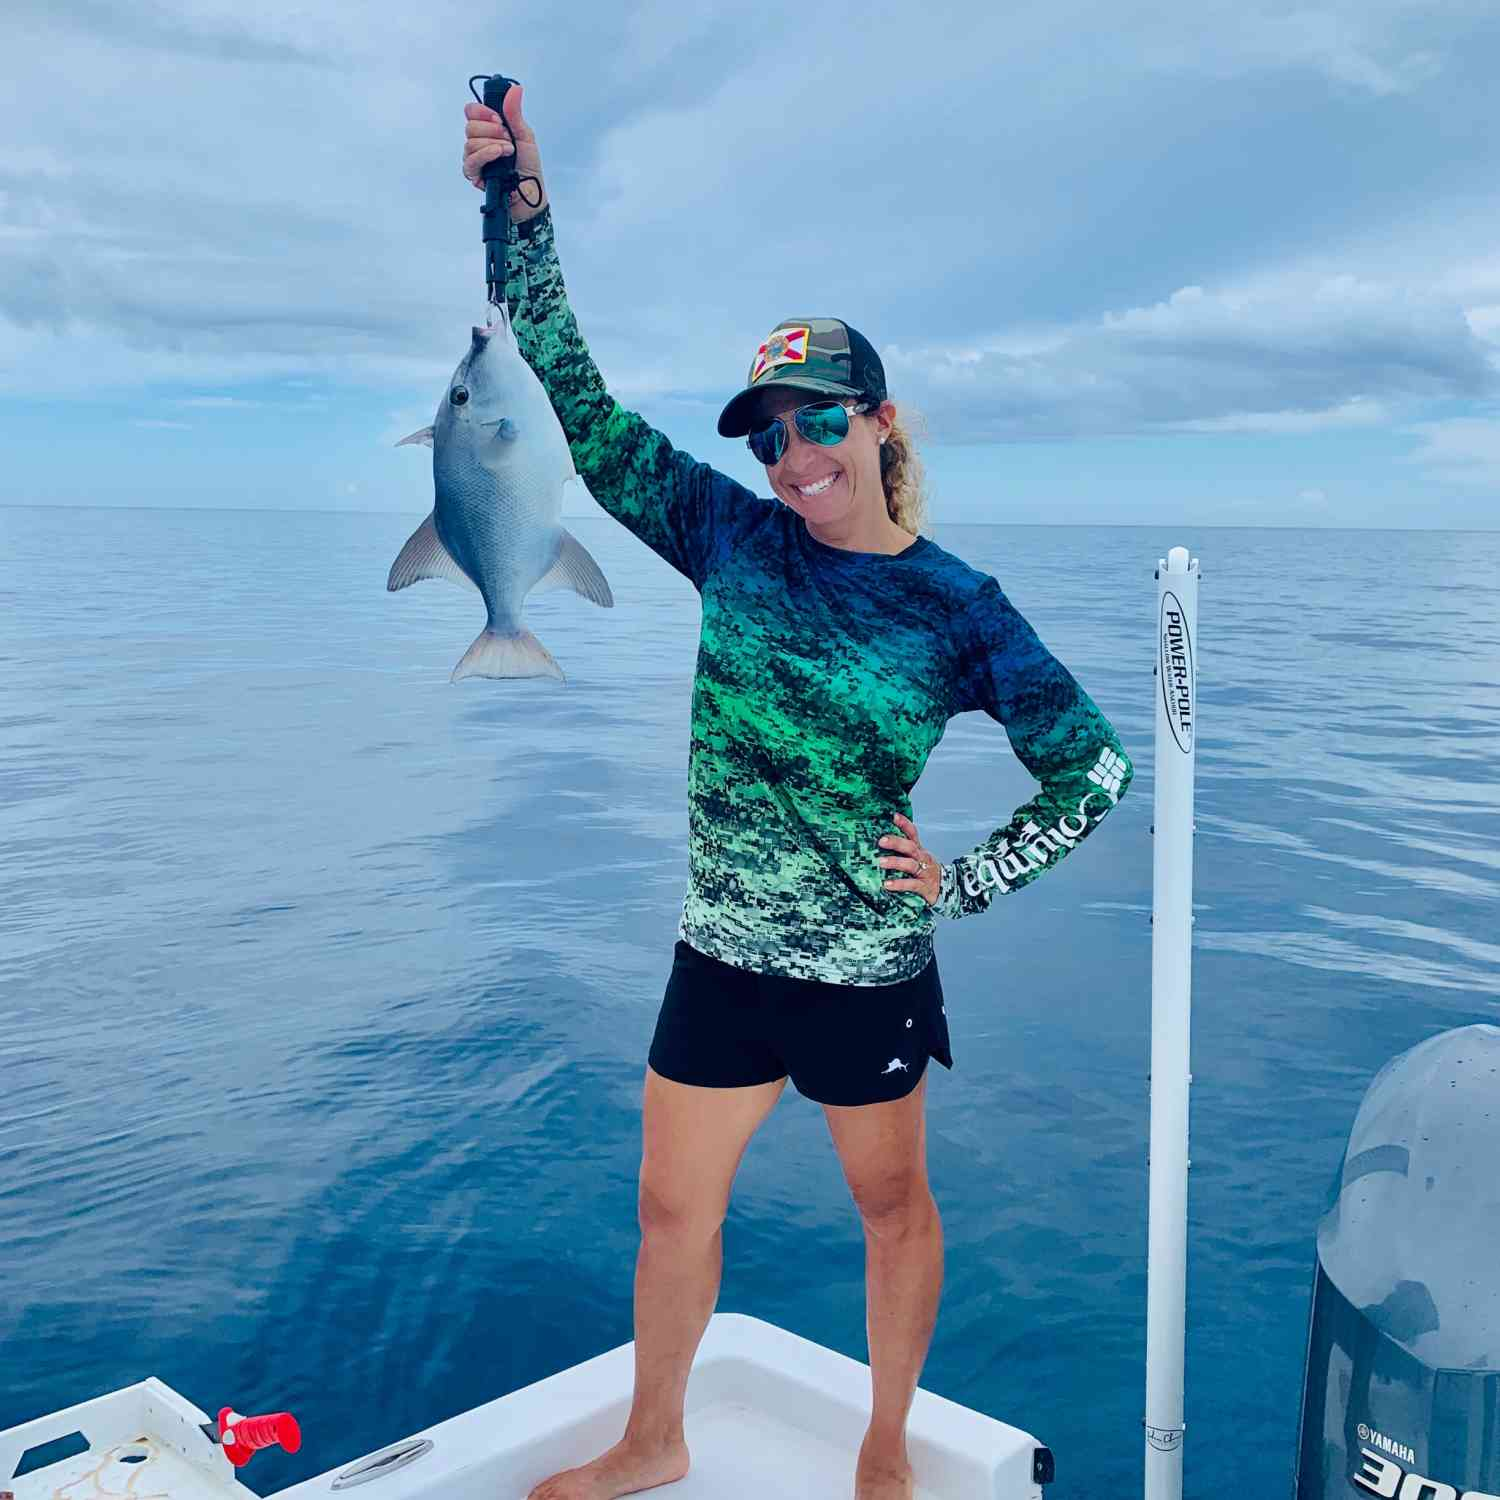 Title: Here Fishy fishy - On board their Sportsman Masters 227 Bay Boat - Location: Bimini, Bahamas. Participating in the Photo Contest #SportsmanJune2020